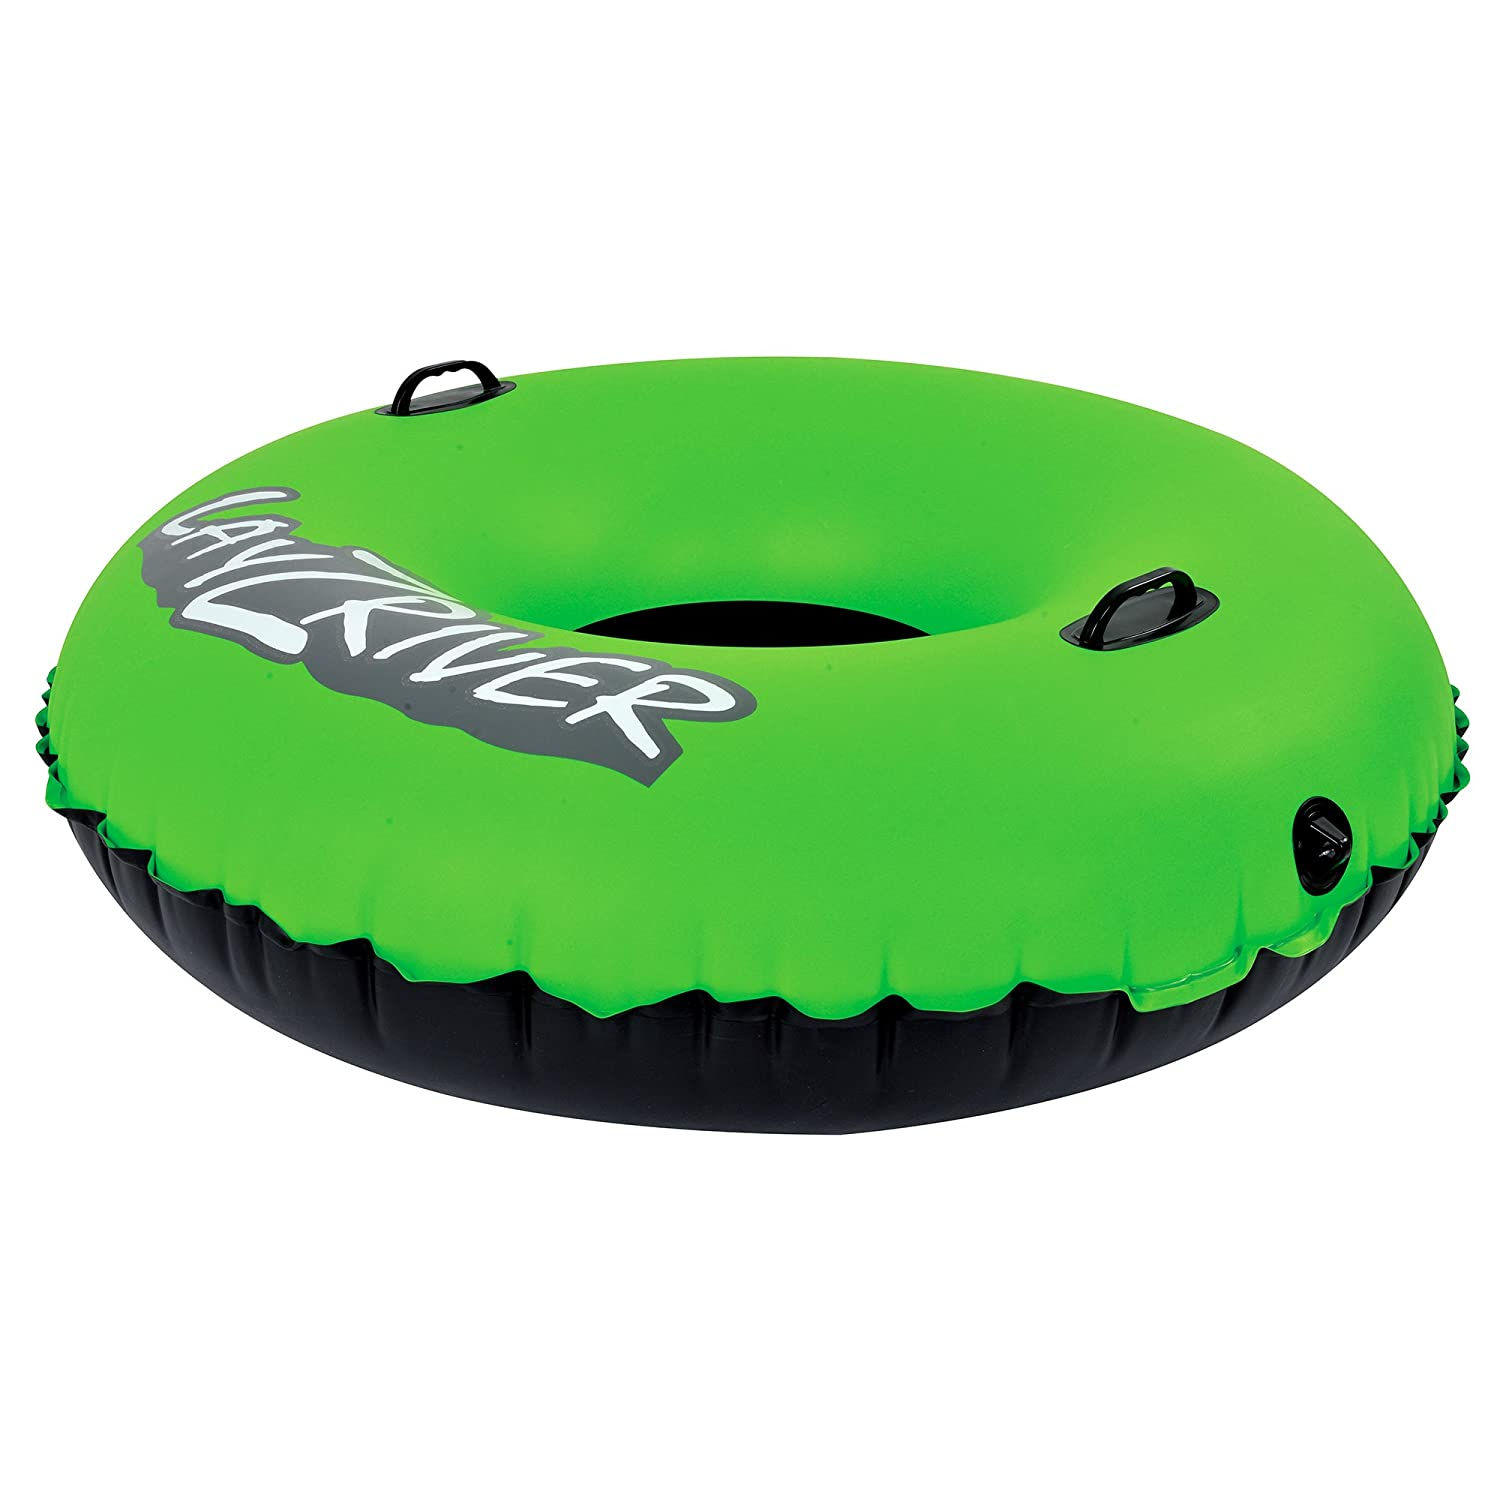 Blue Wave Sports Lay-Z-River Inflatable River Float Tube Blue Wave Products Inc. RL1824